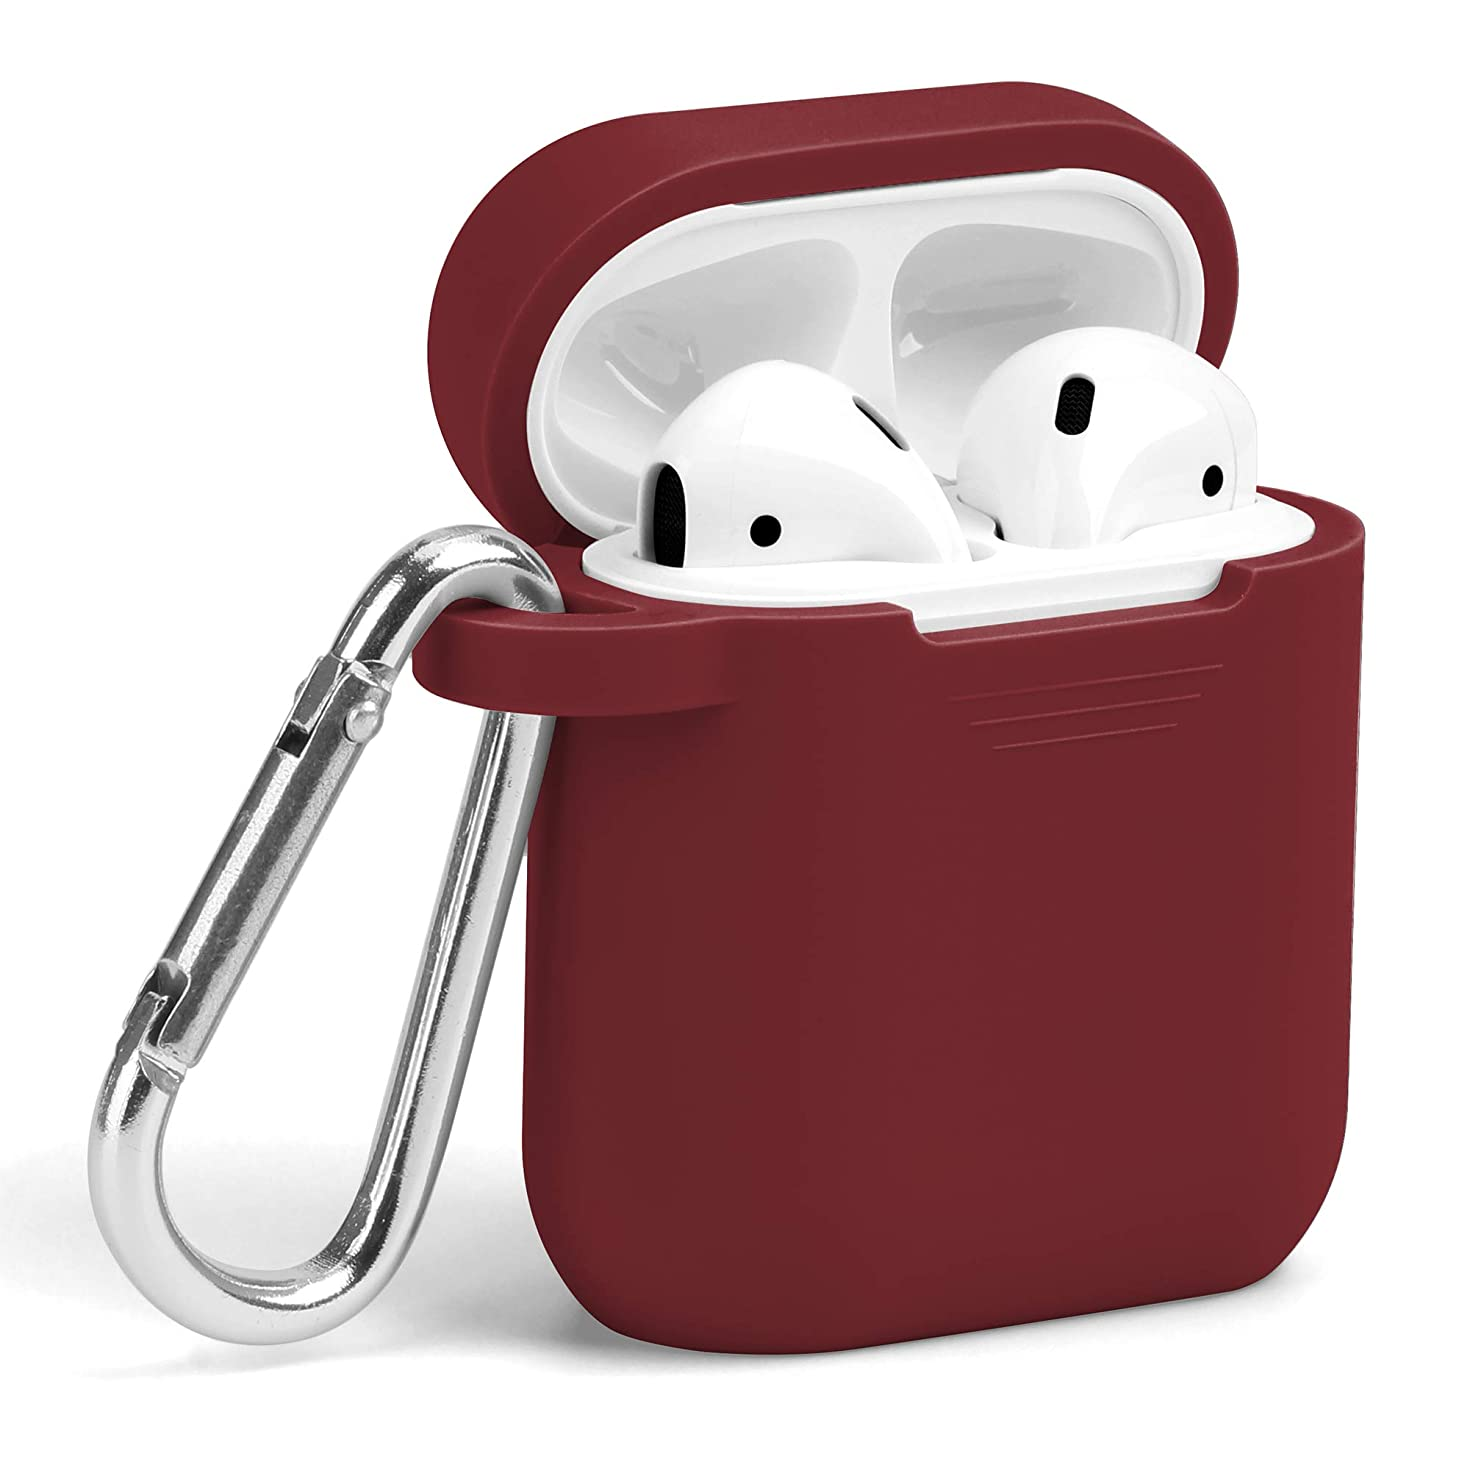 GMYLE AirPods Case Accessories Kit, Silicone Protective Shockproof Wireless Charging Airpods Case Cover Skin with Keychain/Ear Hook/Strap Set for Apple AirPods 1 & 2 - Burgundy